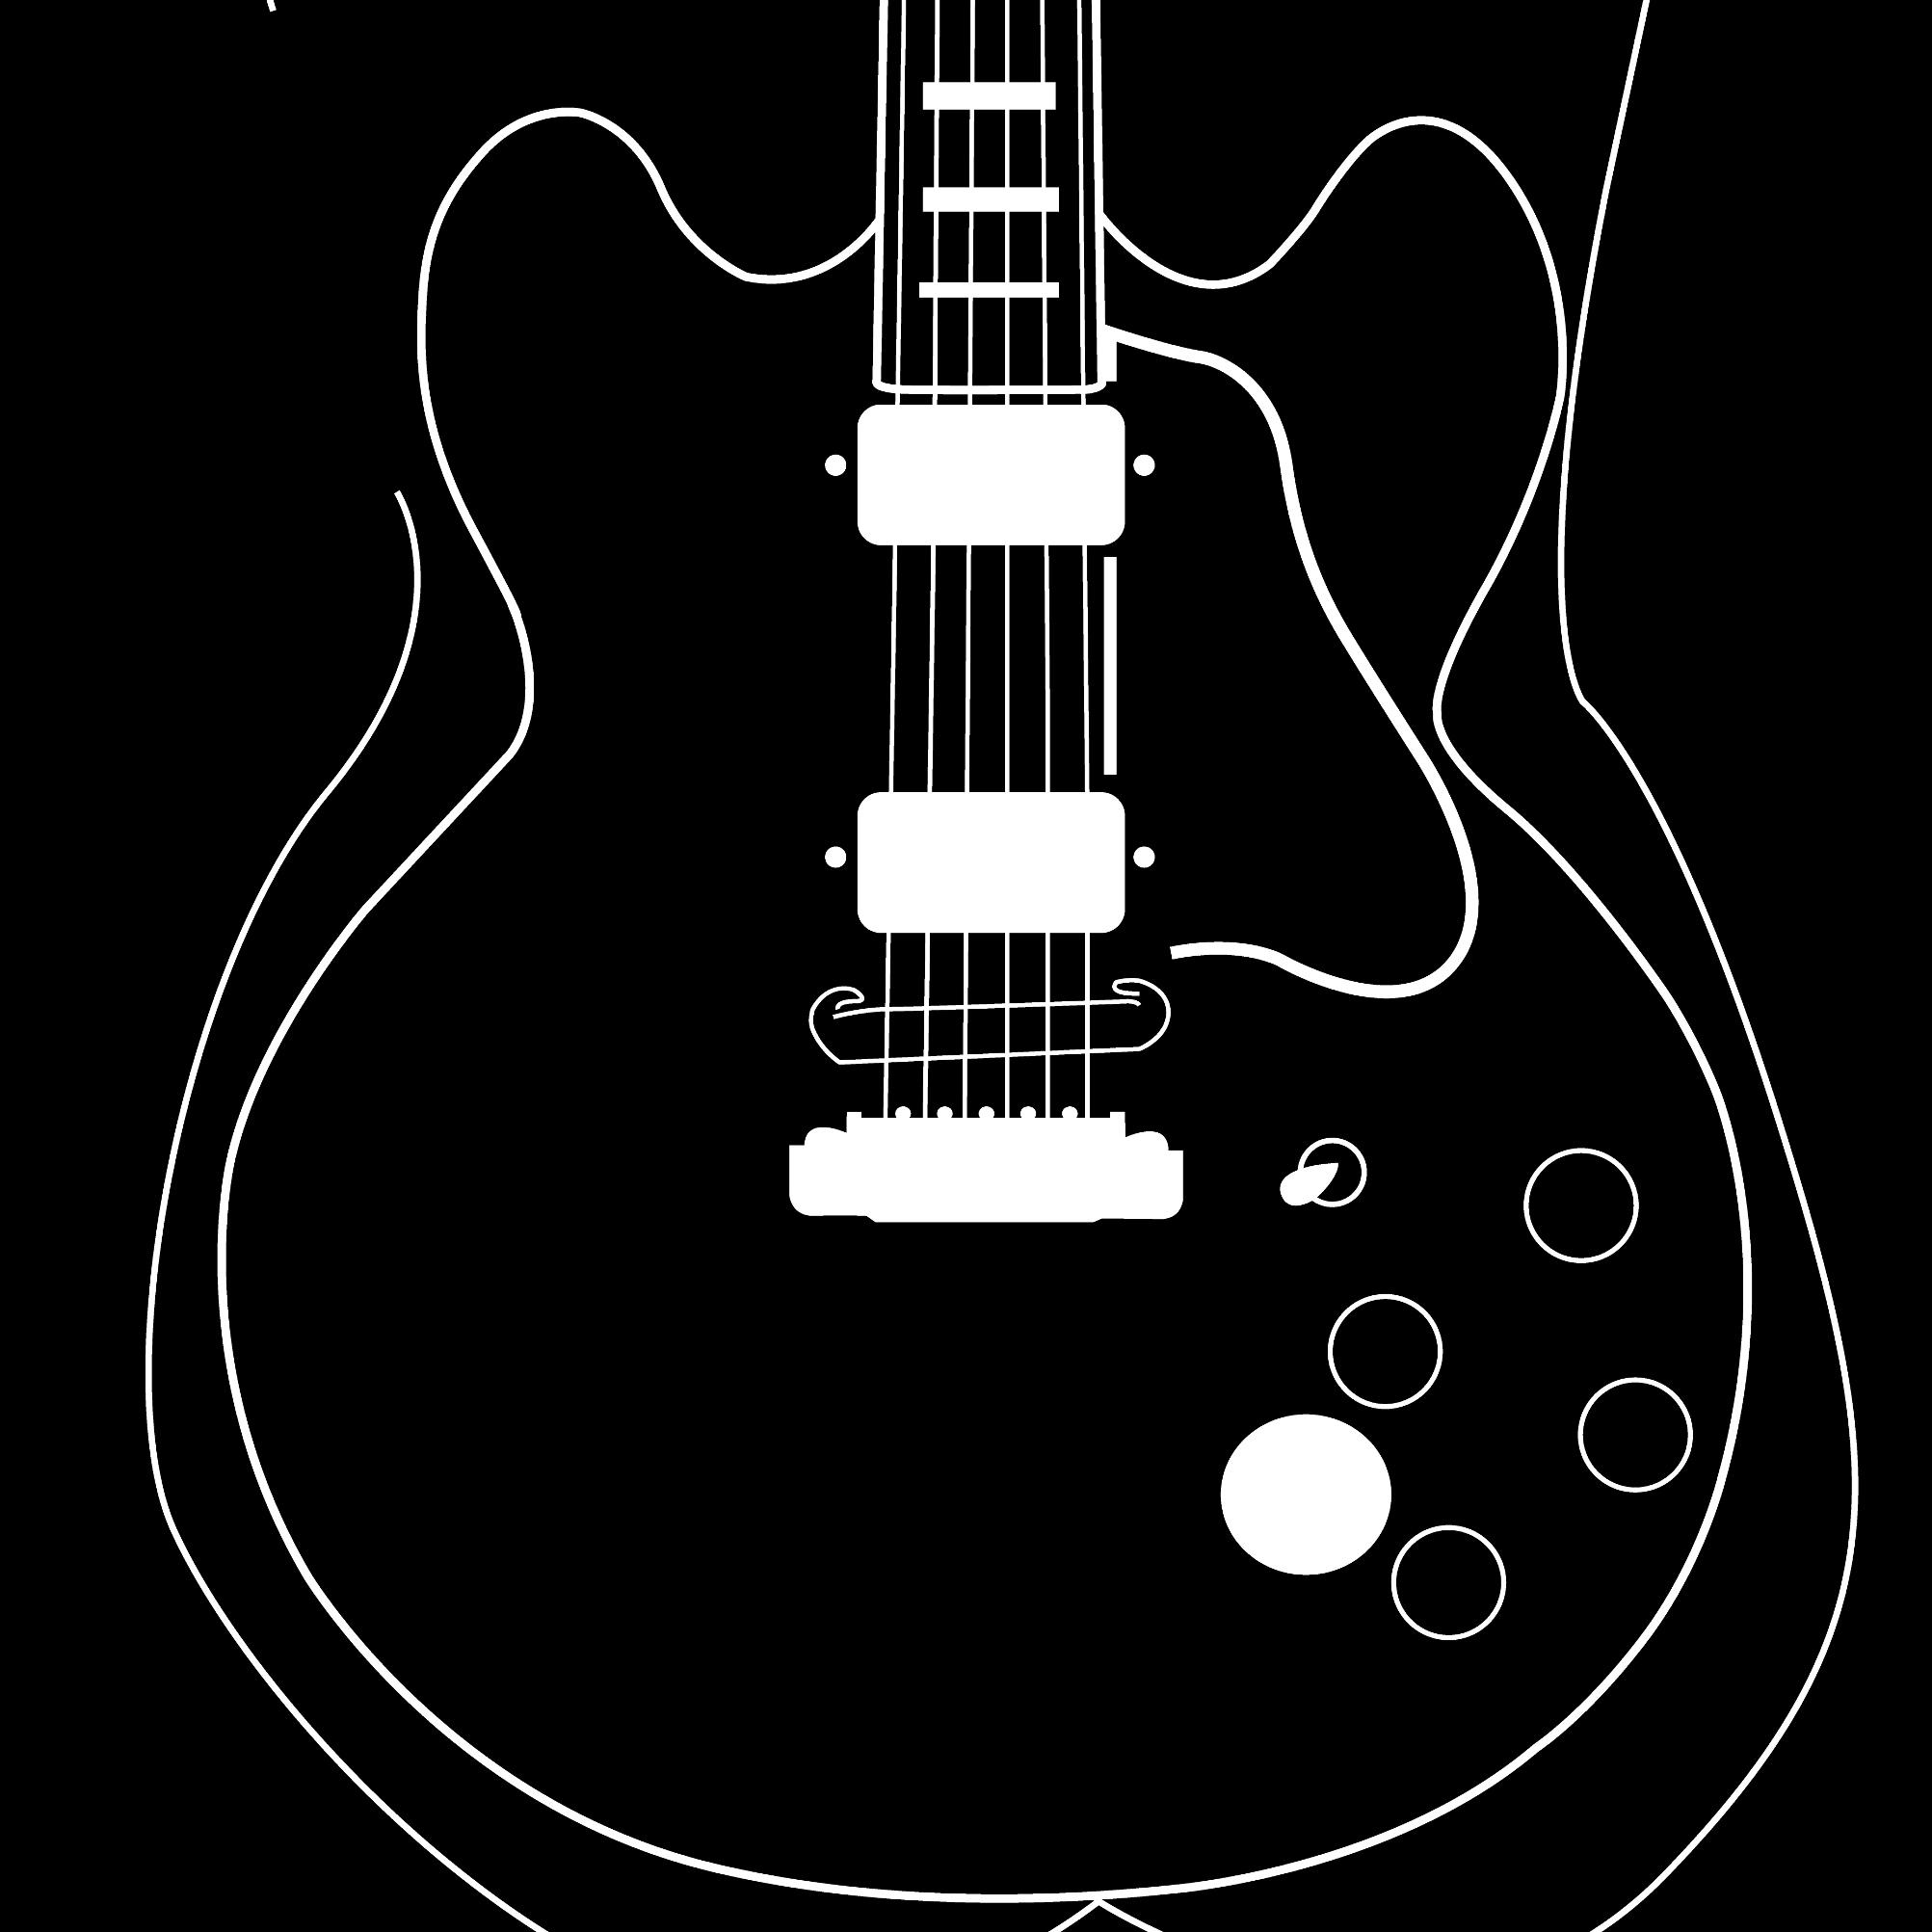 Close up of a digital illustration by Clarrie-Anne giclée printed on eco fine art paper titled Lucille. Featuring a white line outline of a female and the Gibson guitar of BB King with a black background.